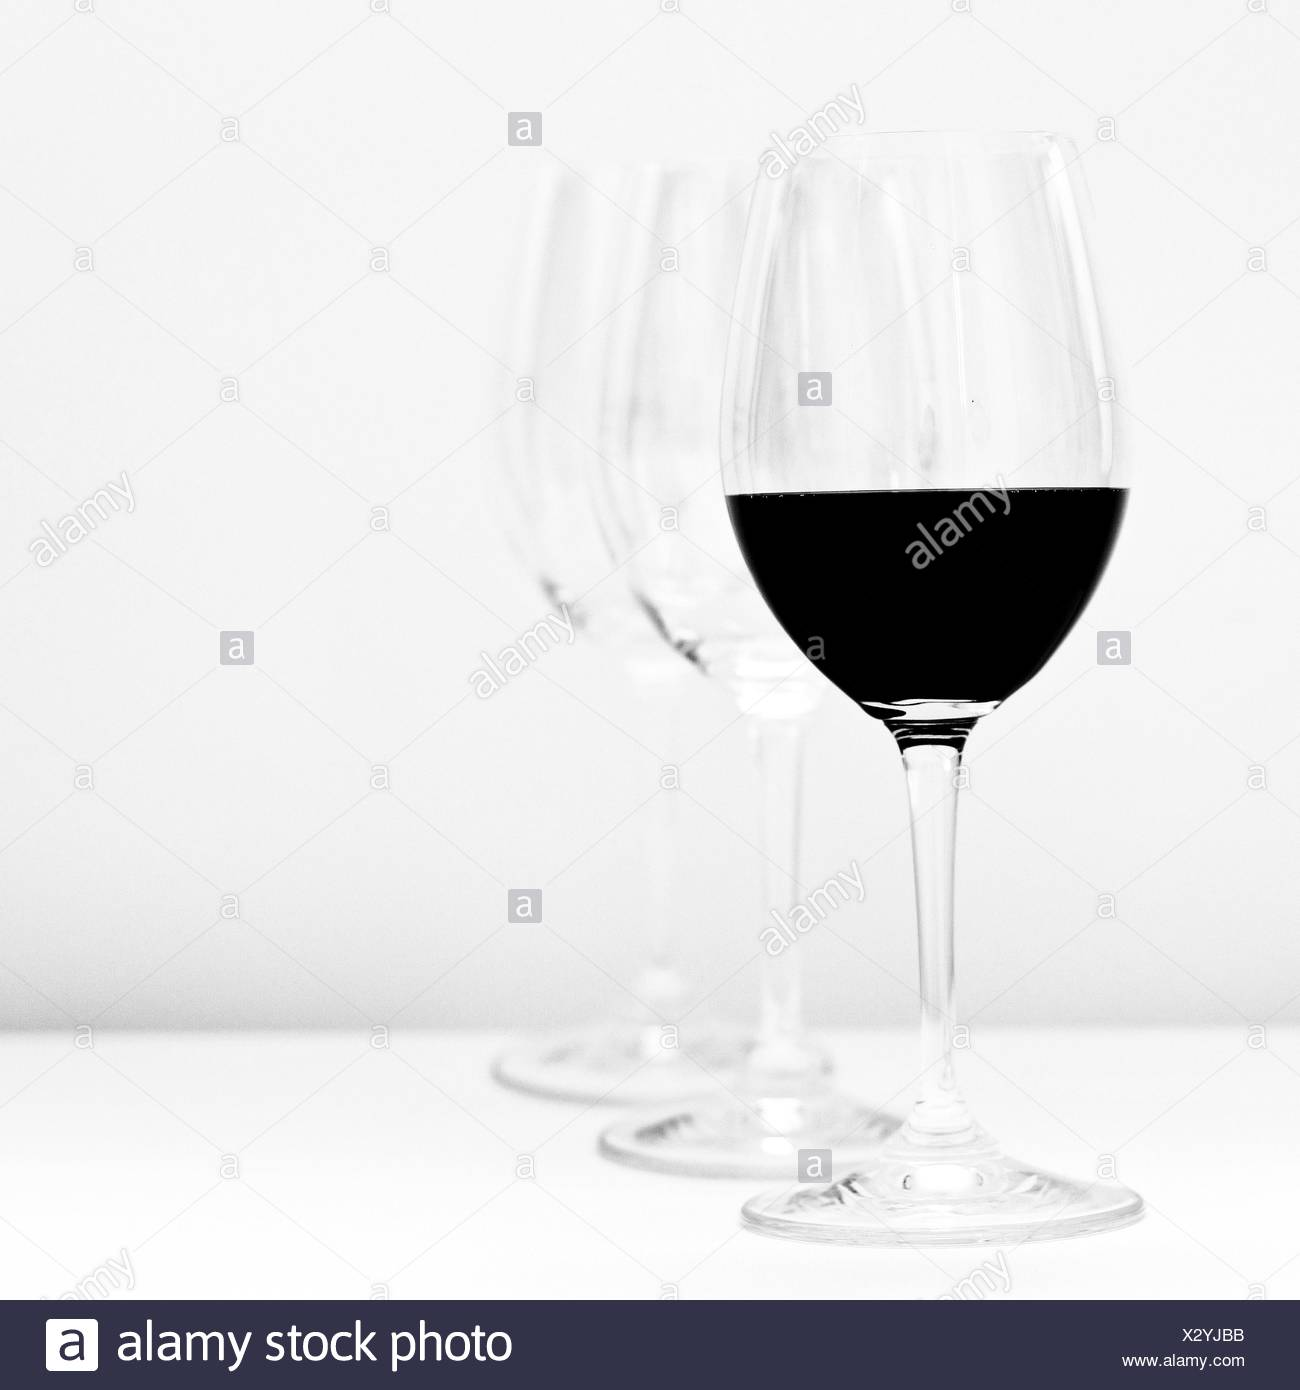 Wine Served On Table Against White Background - Stock Image